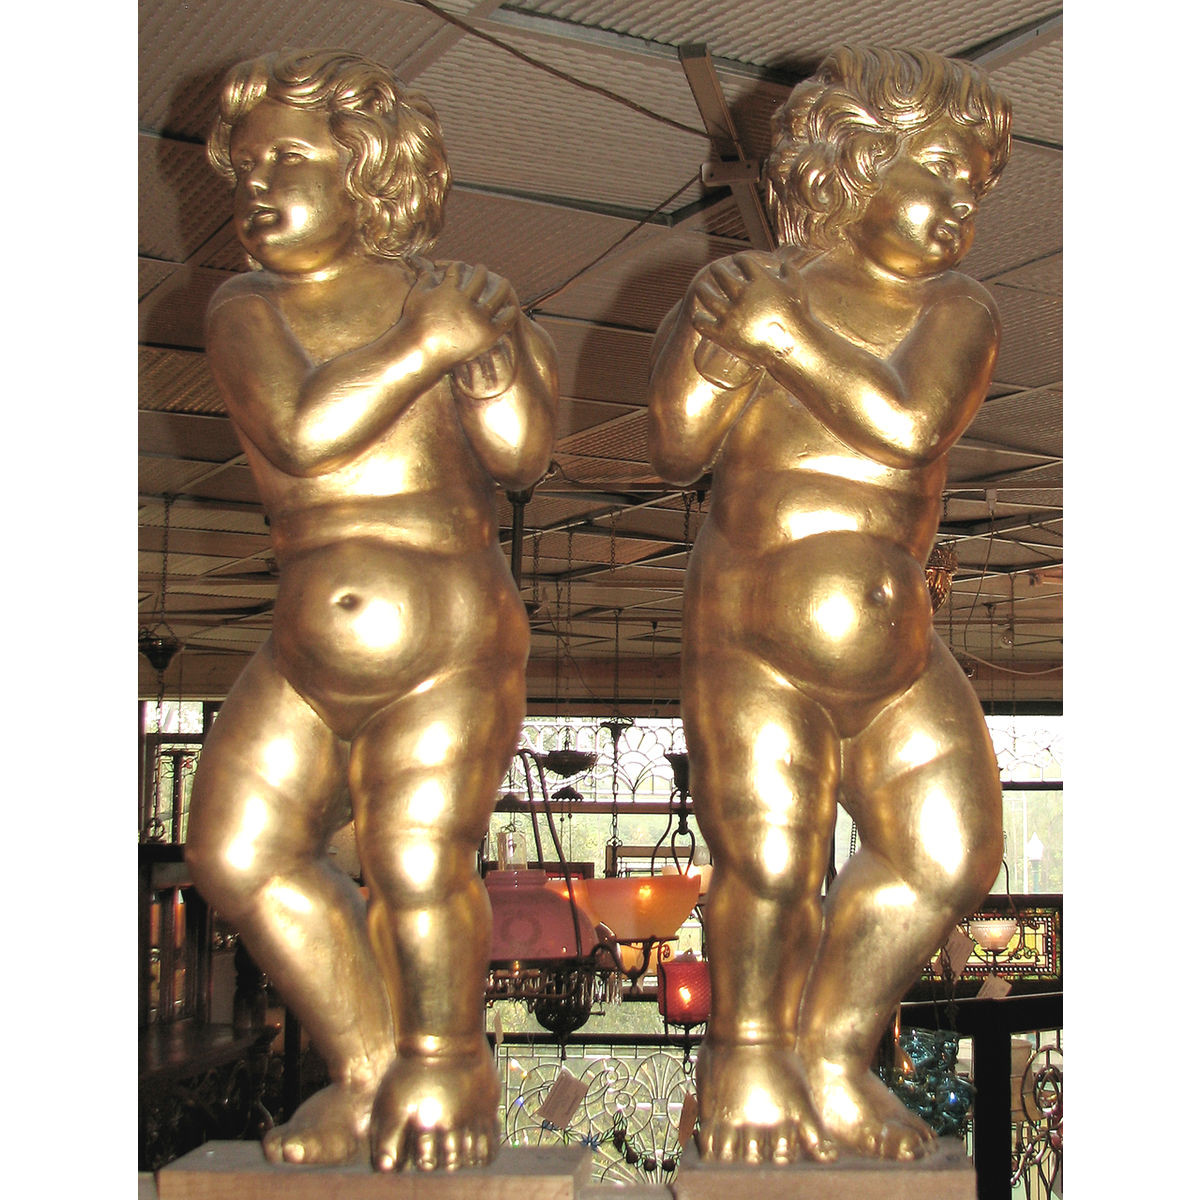 805268 - Pair of Carved Gilded Neoclassical Putti